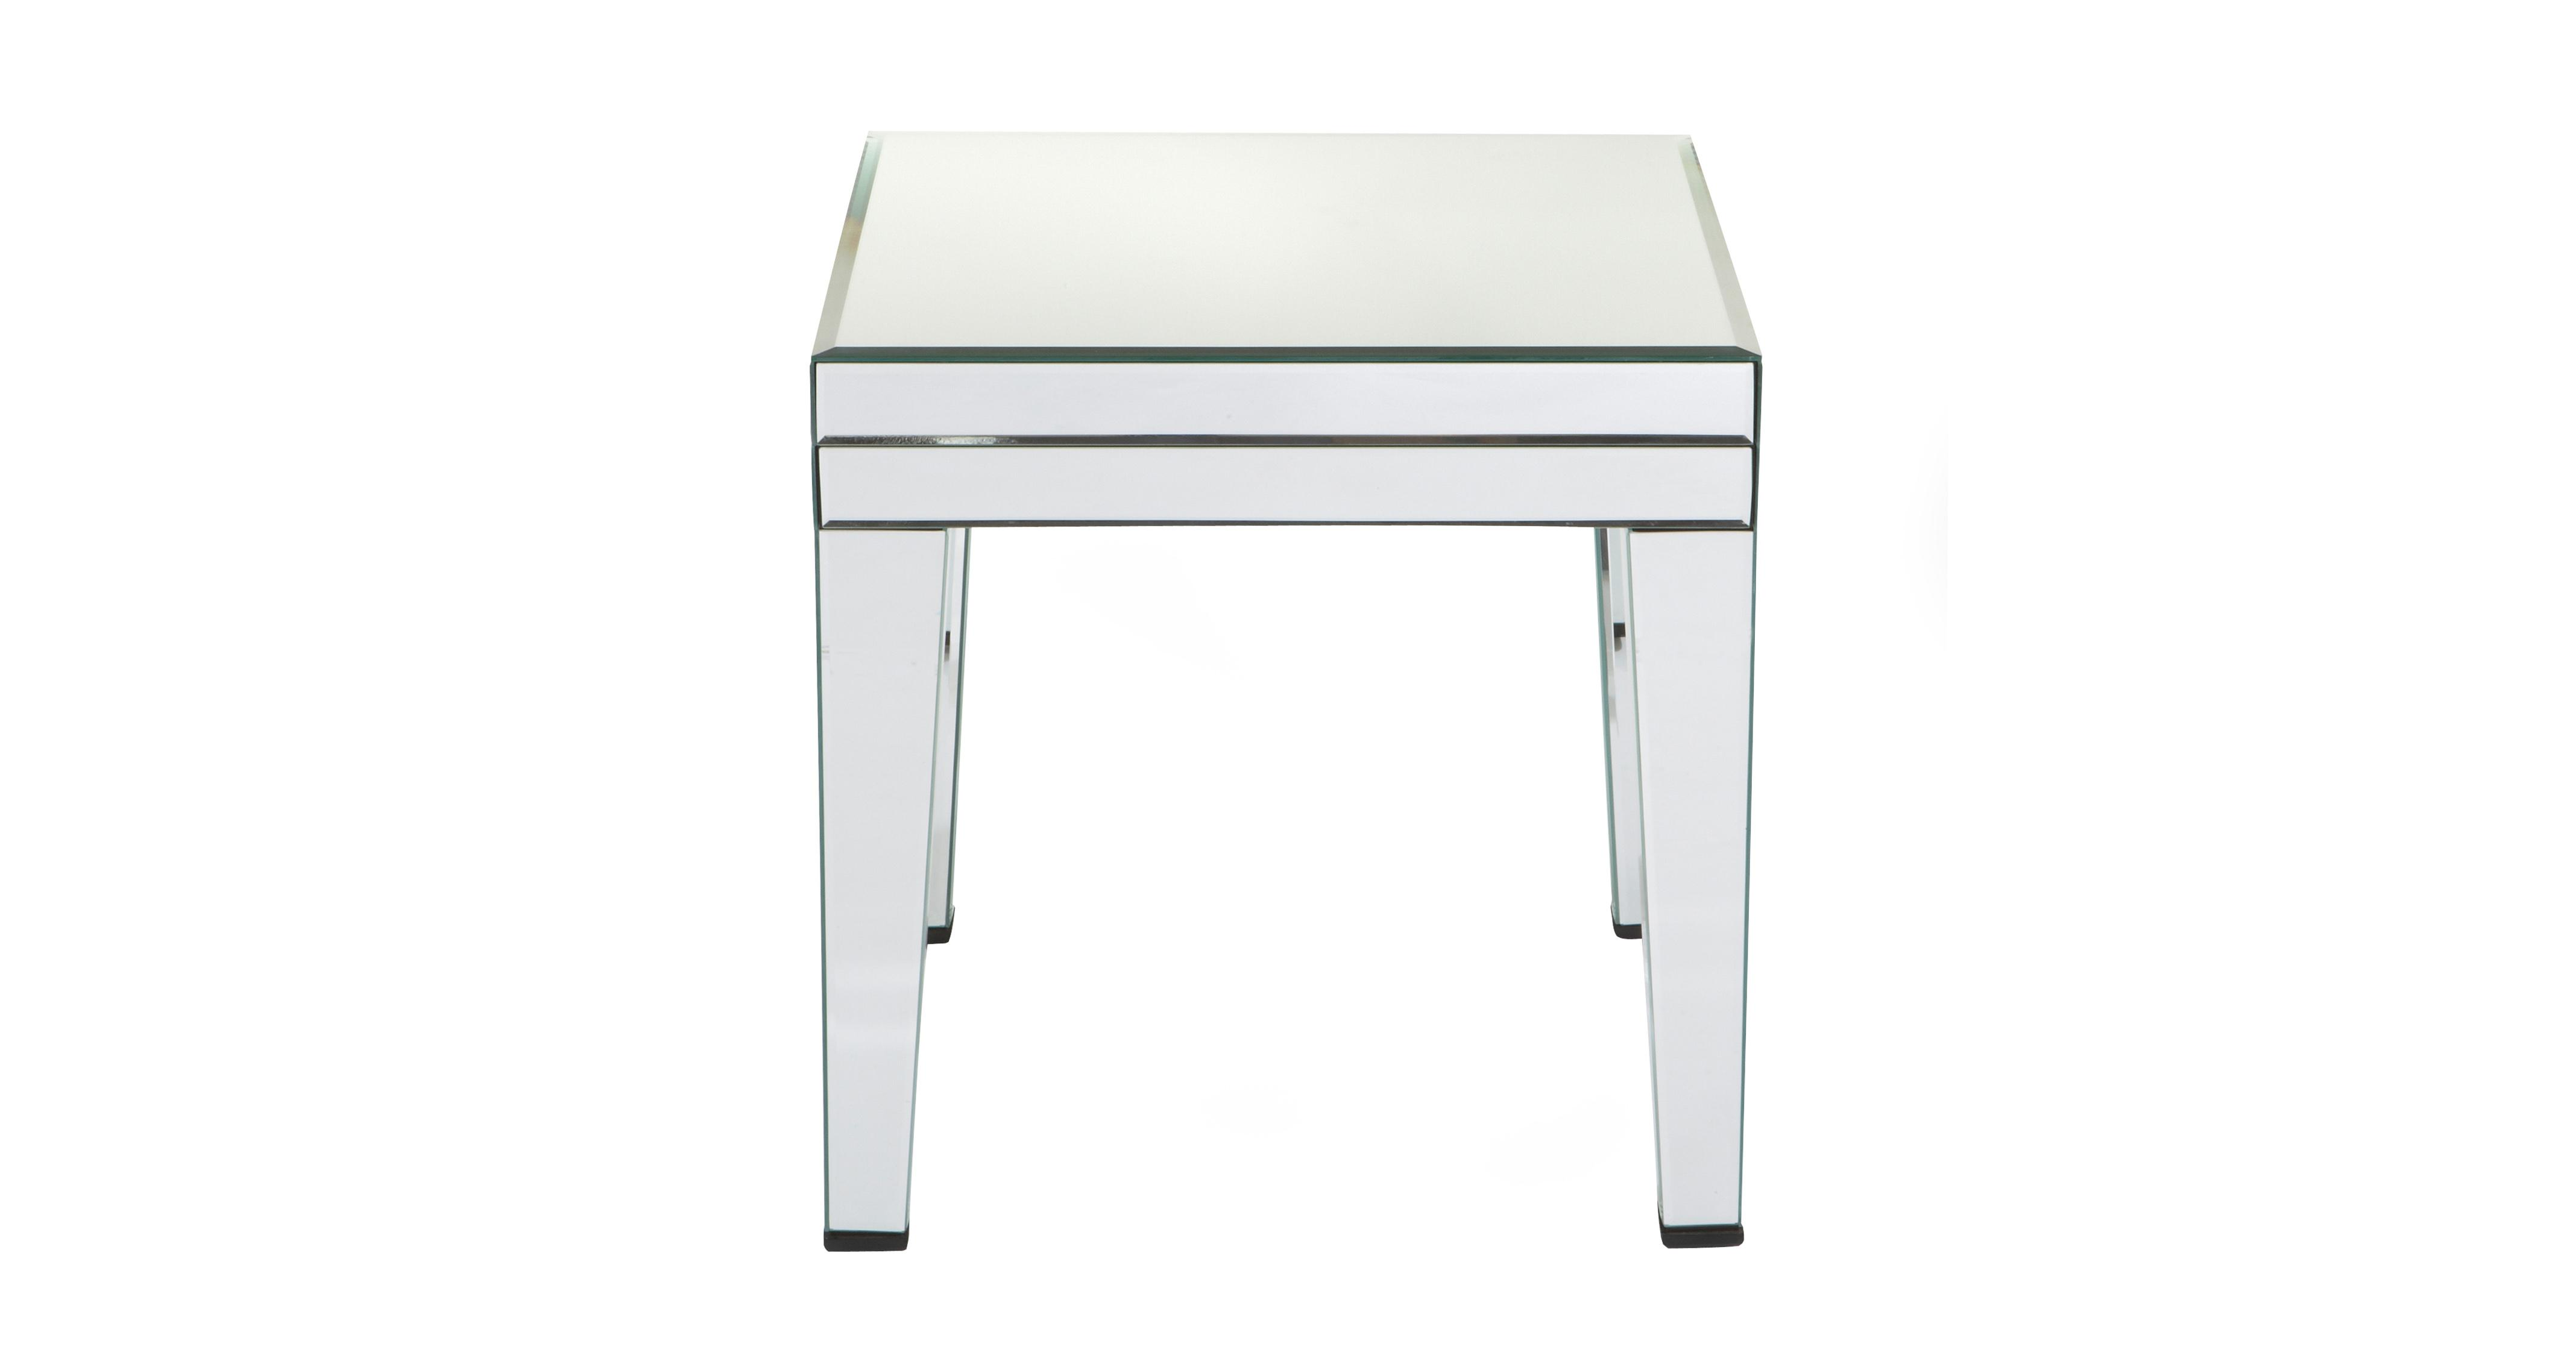 Paradox Mirrored Lamp Table Mirrored Glass | DFS